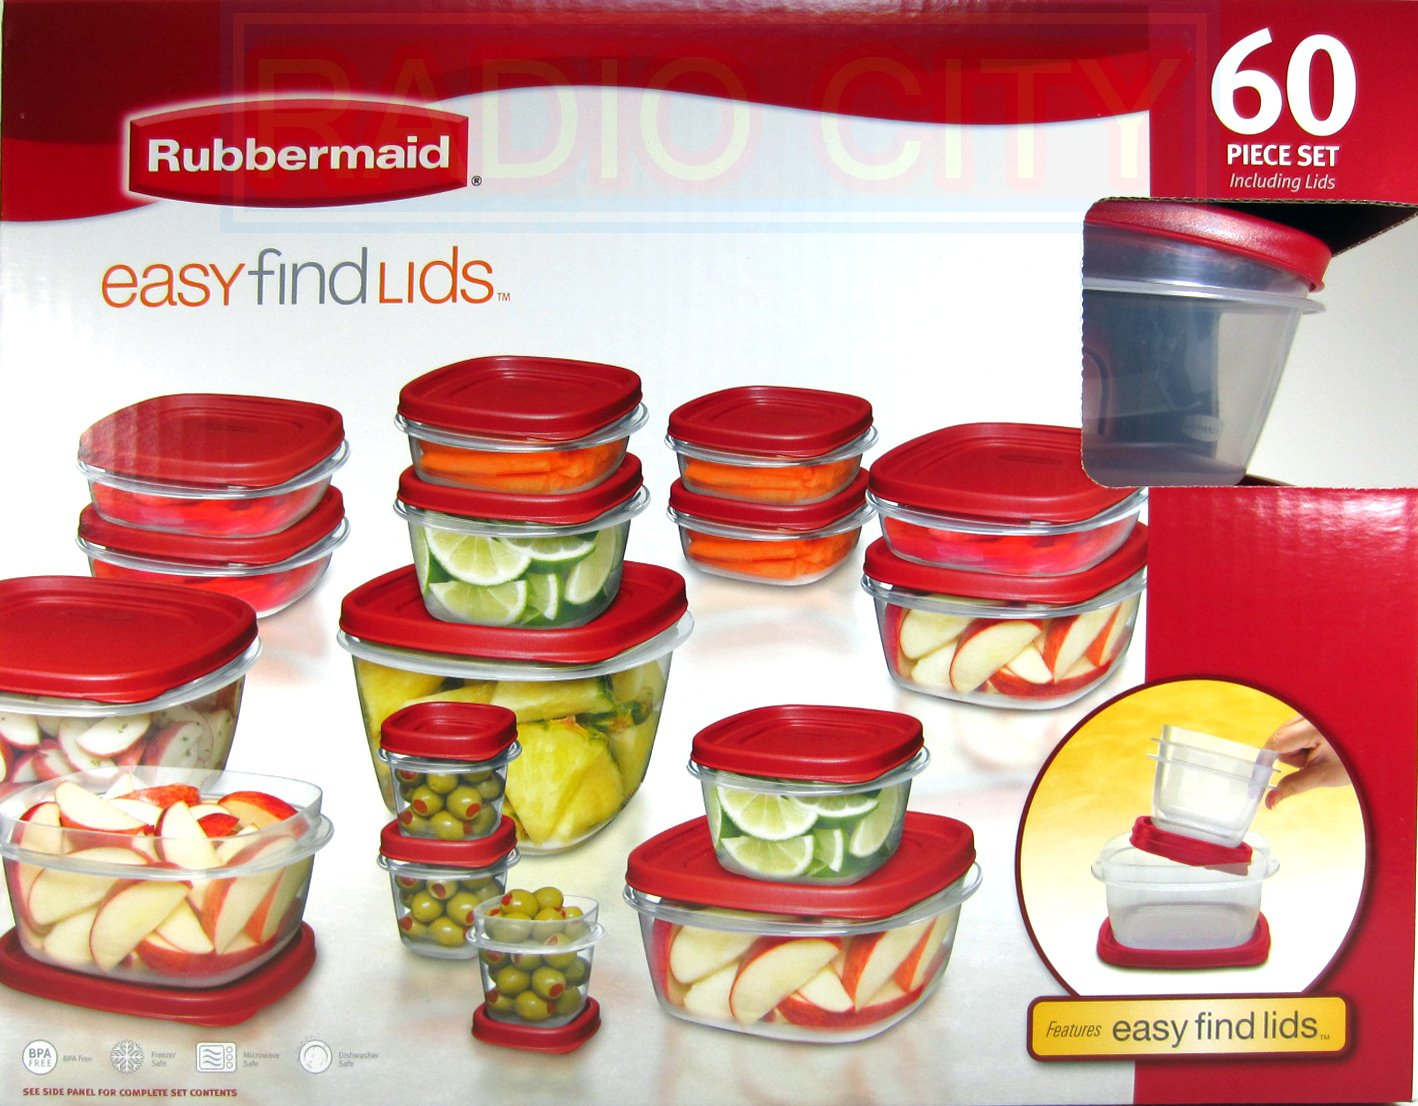 Rubbermaid 60 Piece Set BPA-FREE Plastic Food Storage Containers with Easy Find Lids